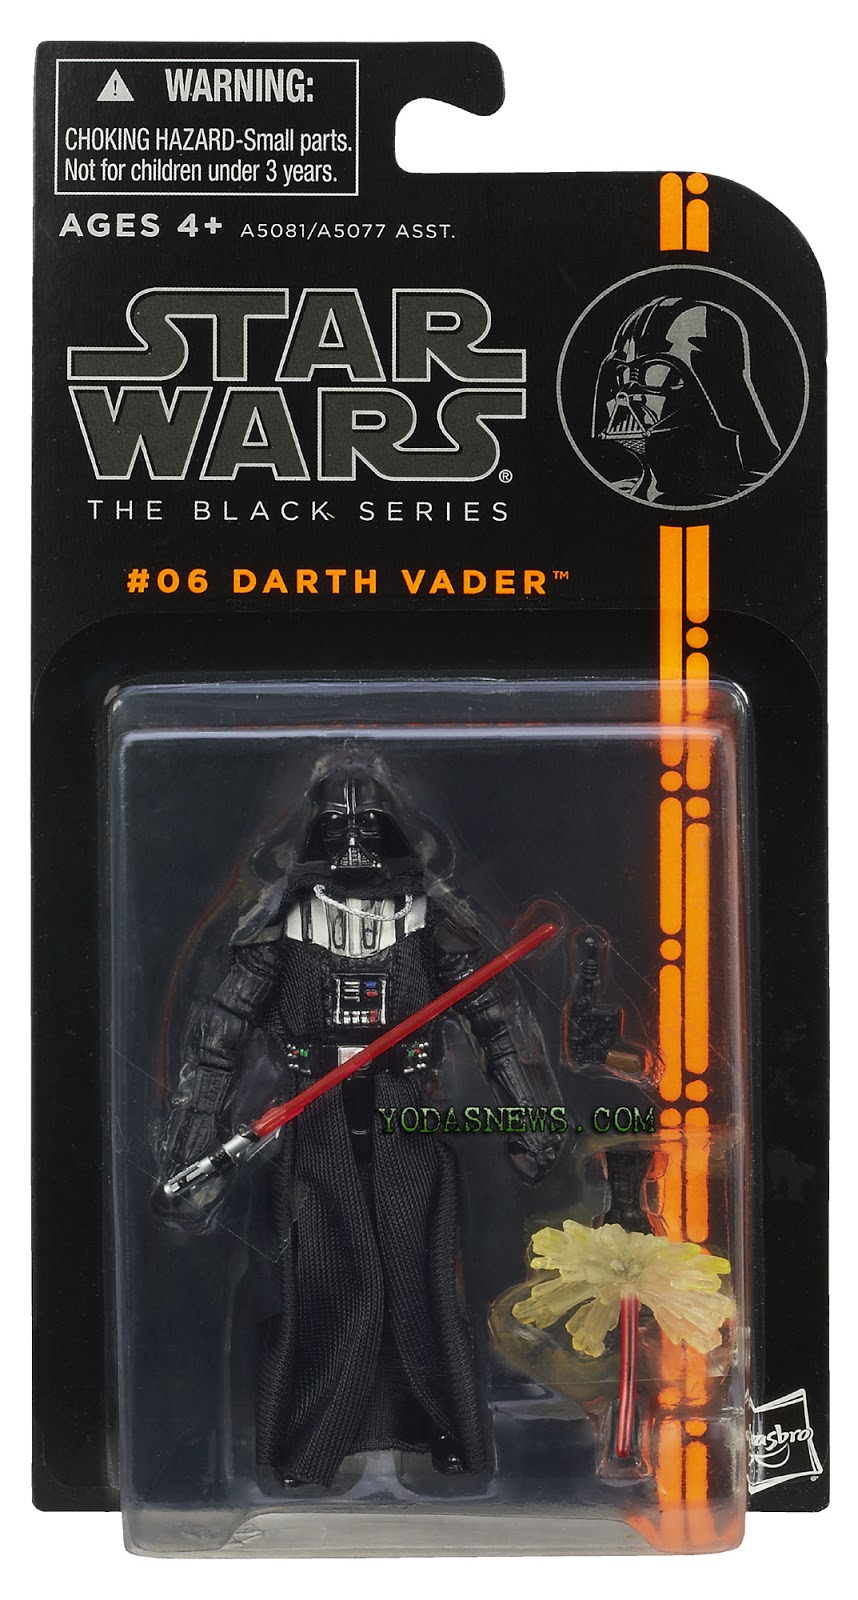 The Black Series Wave 1 Carded Images | The Star Wars ...